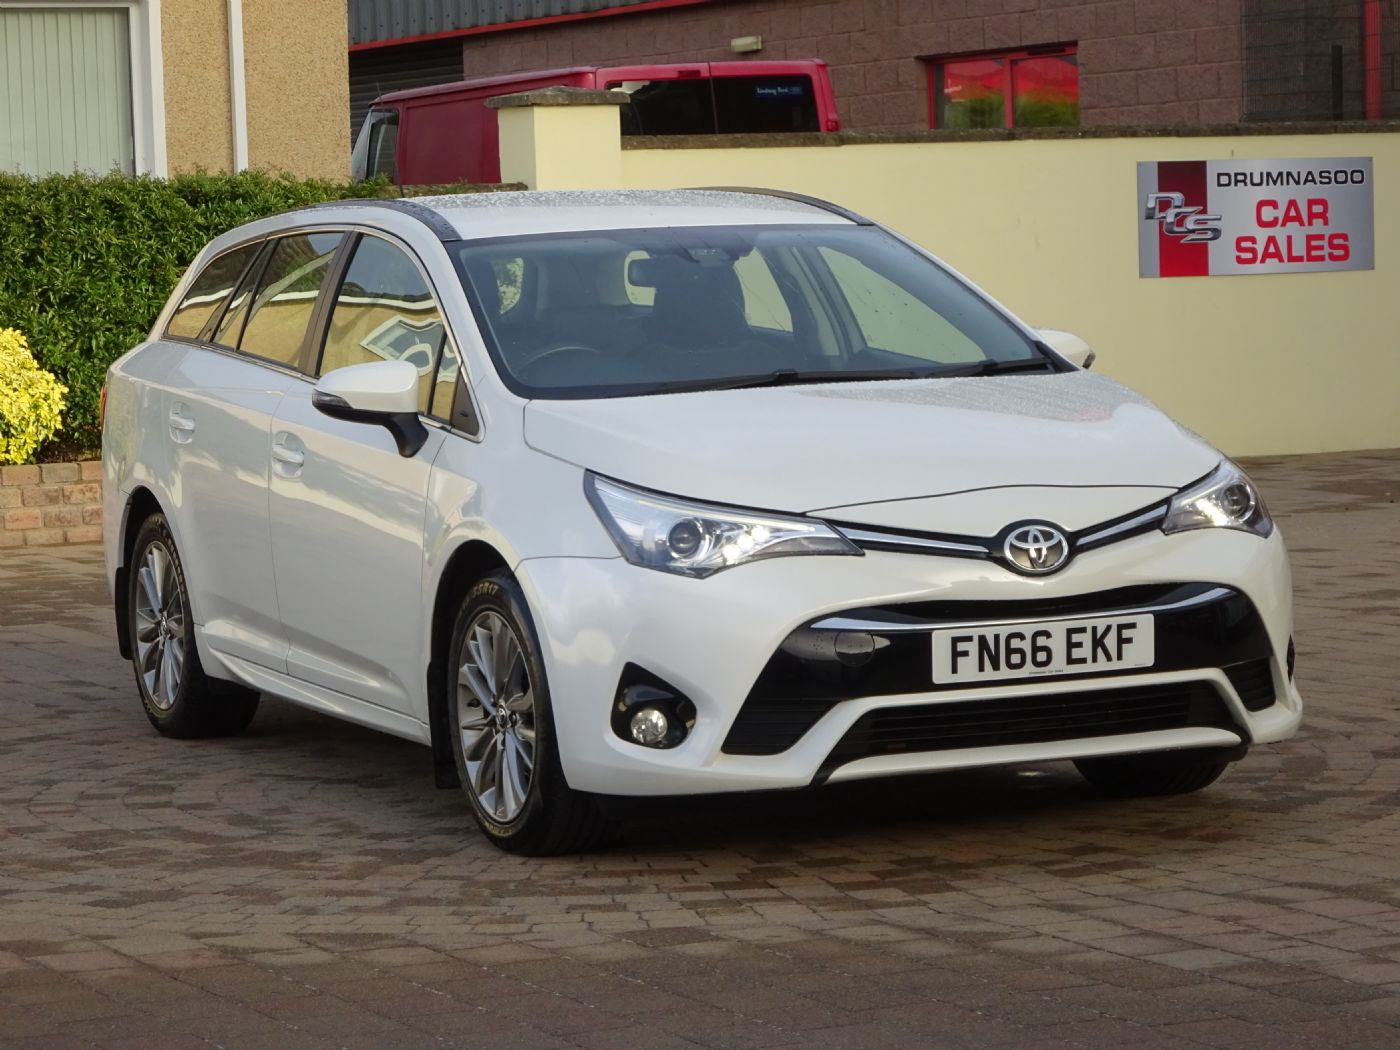 Toyota Avensis Business Edition 1.6 D-4D, Sat nav, £20 Road tax